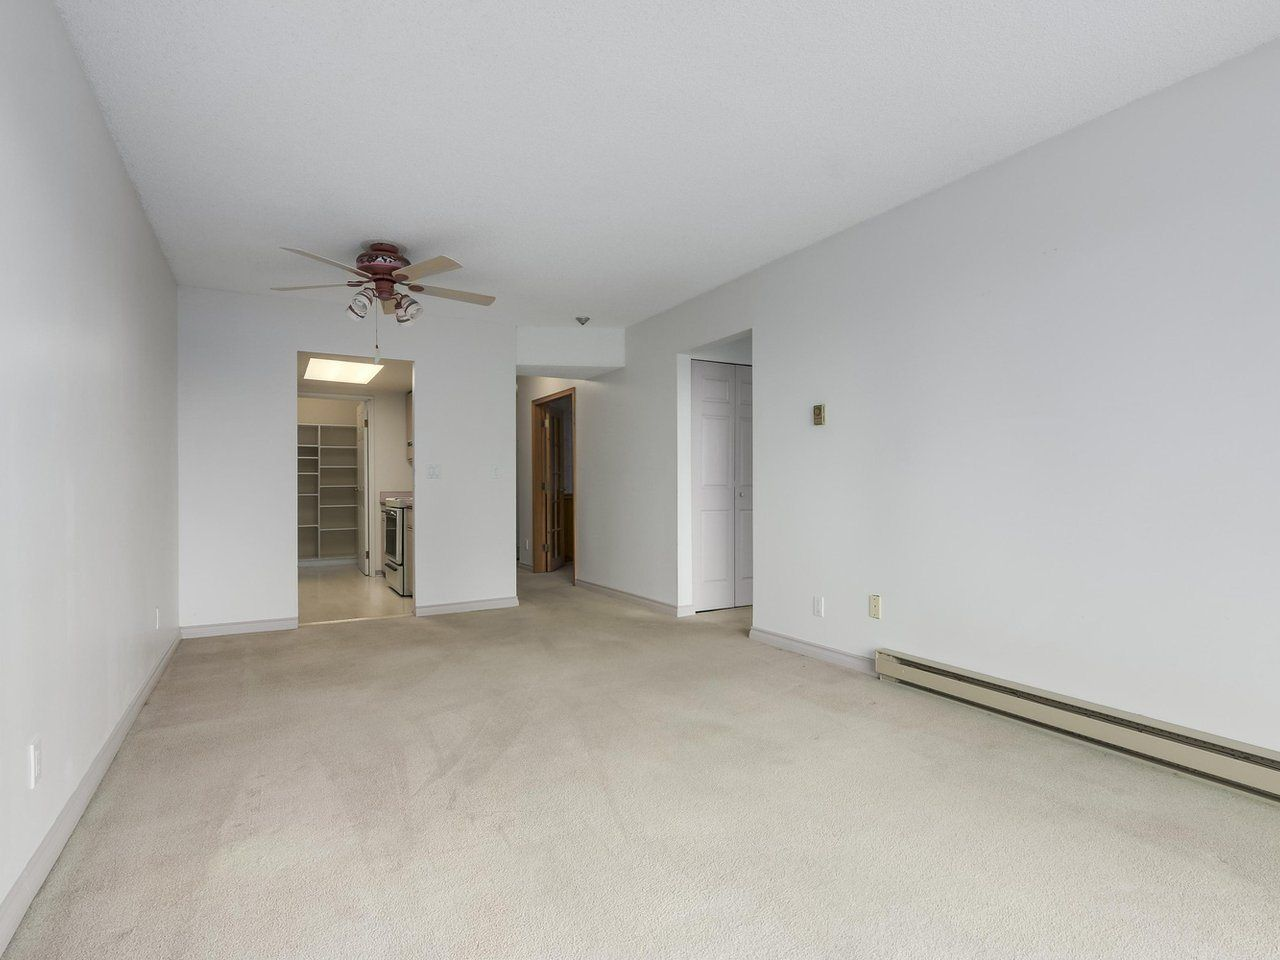 """Photo 8: Photos: 311 1341 GEORGE Street: White Rock Condo for sale in """"OCEANVIEW"""" (South Surrey White Rock)  : MLS®# R2381098"""